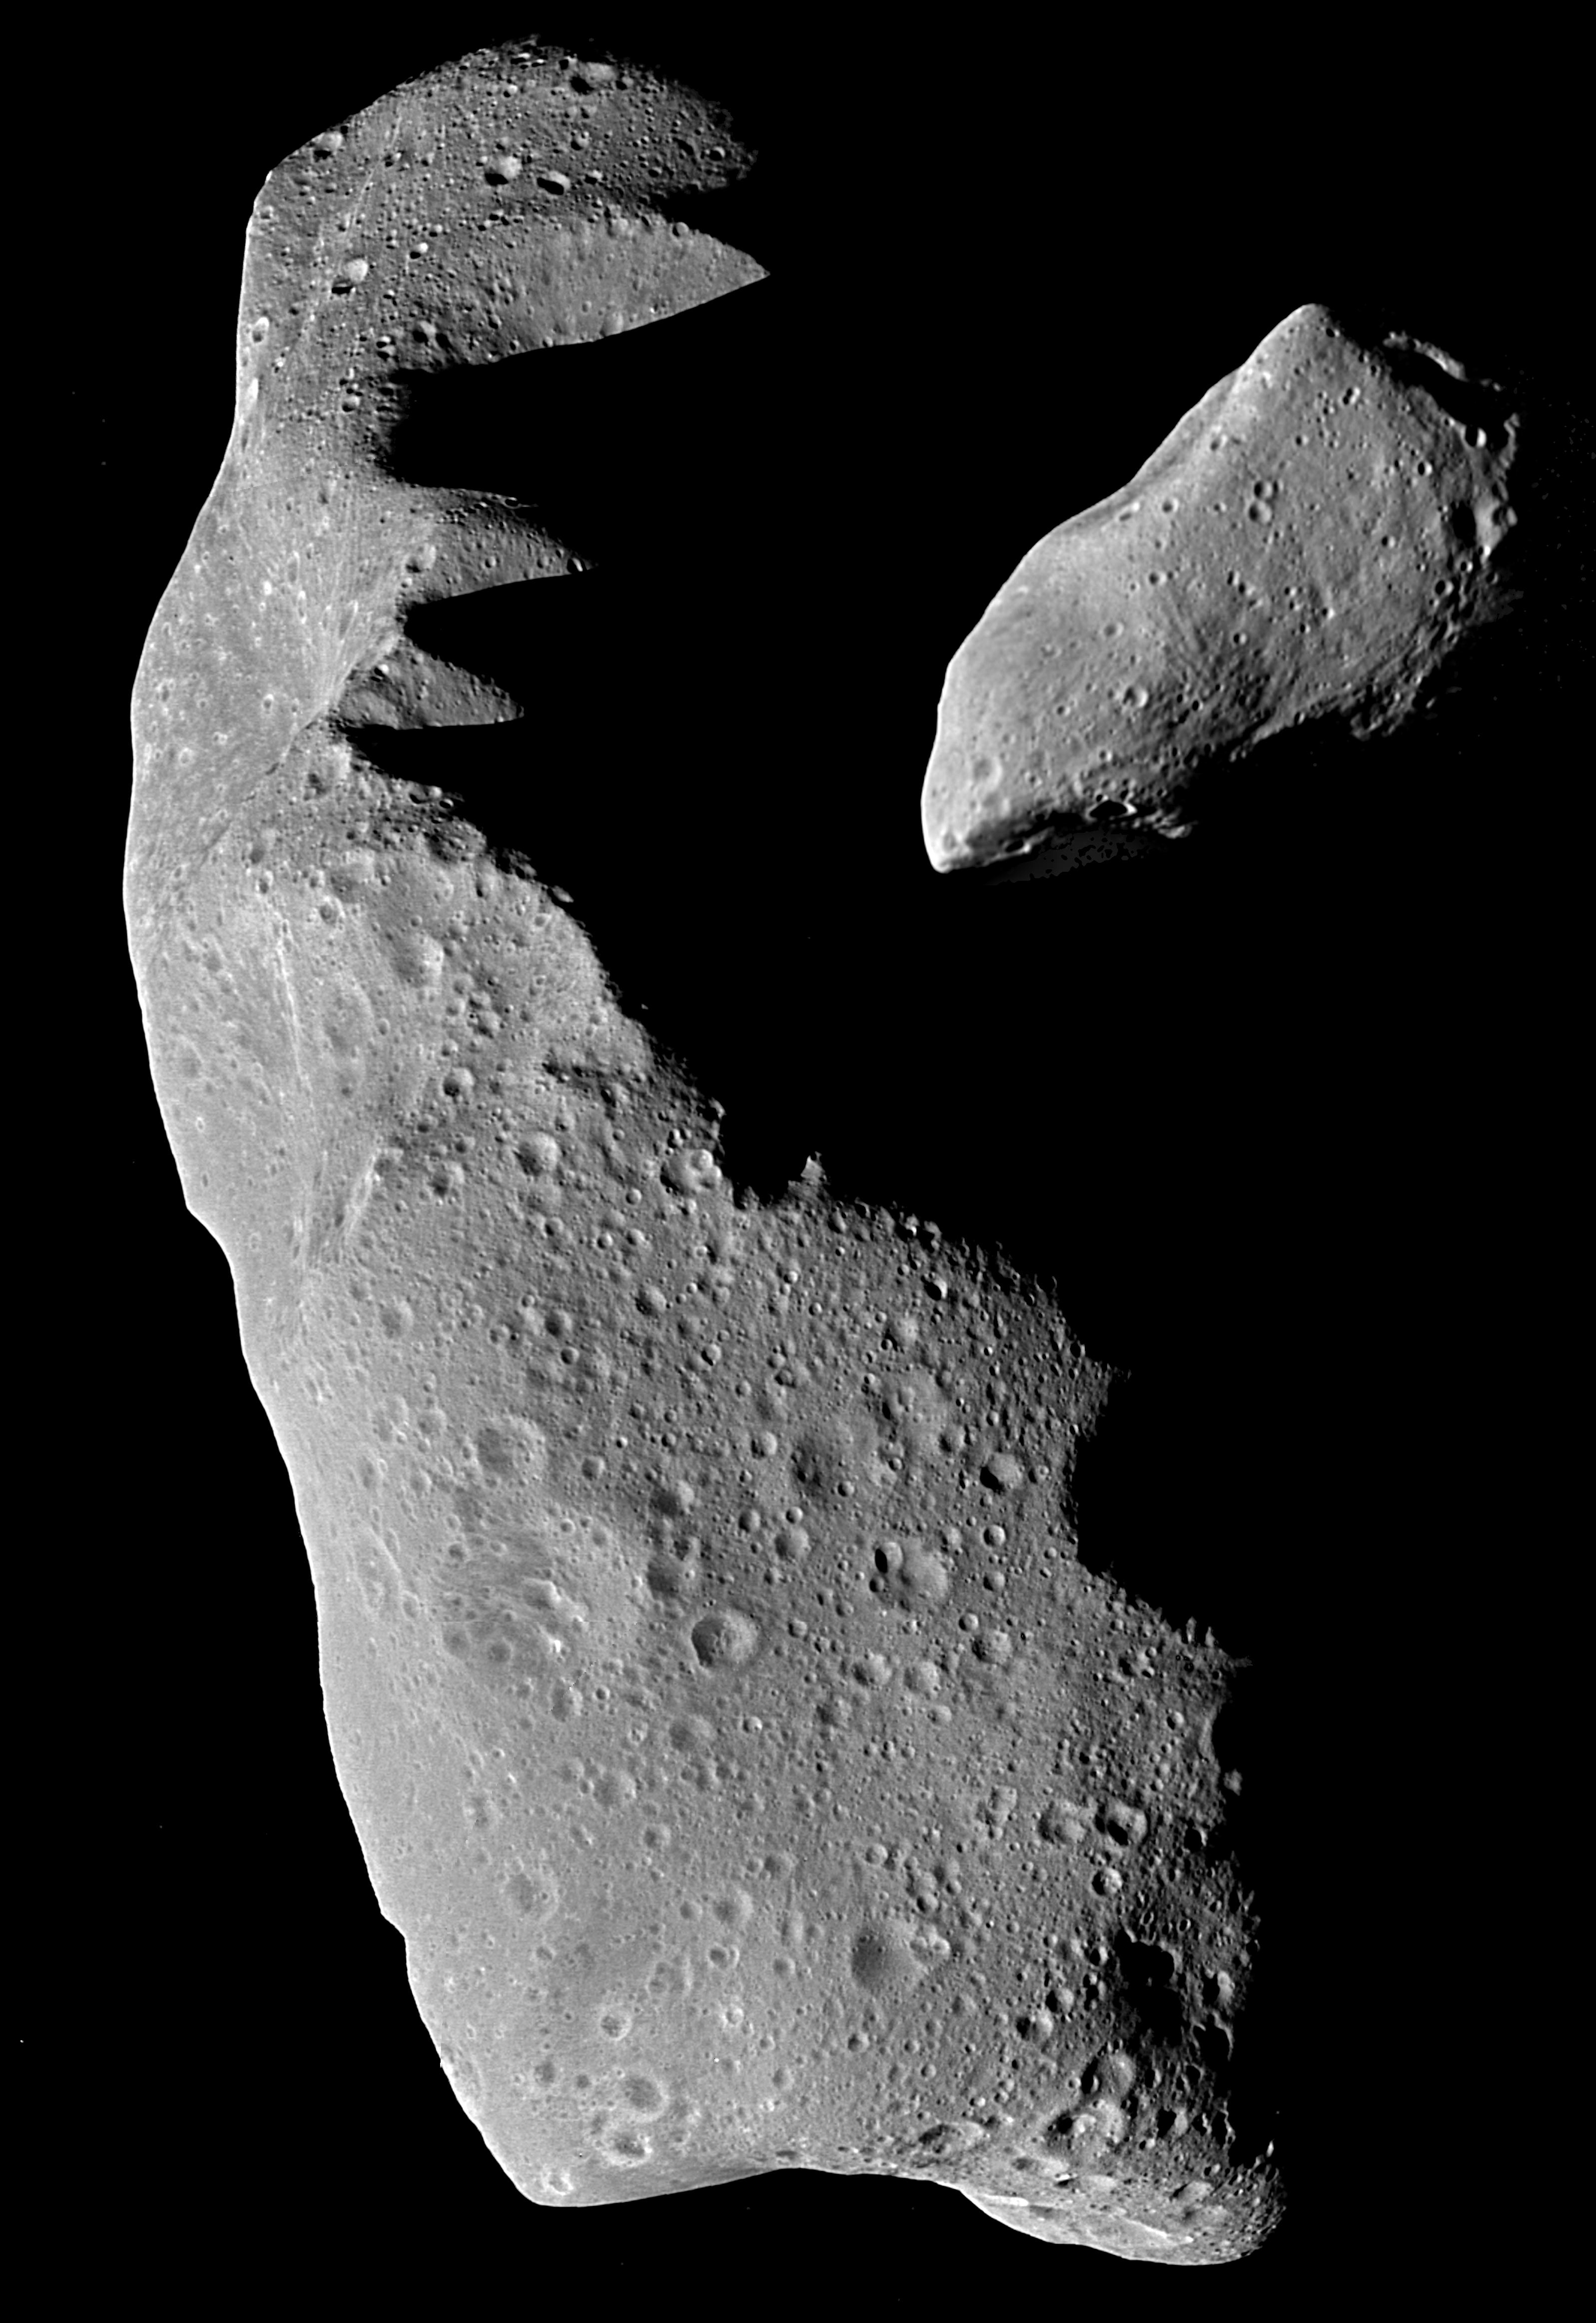 Image of asteroids Ida and Gastra